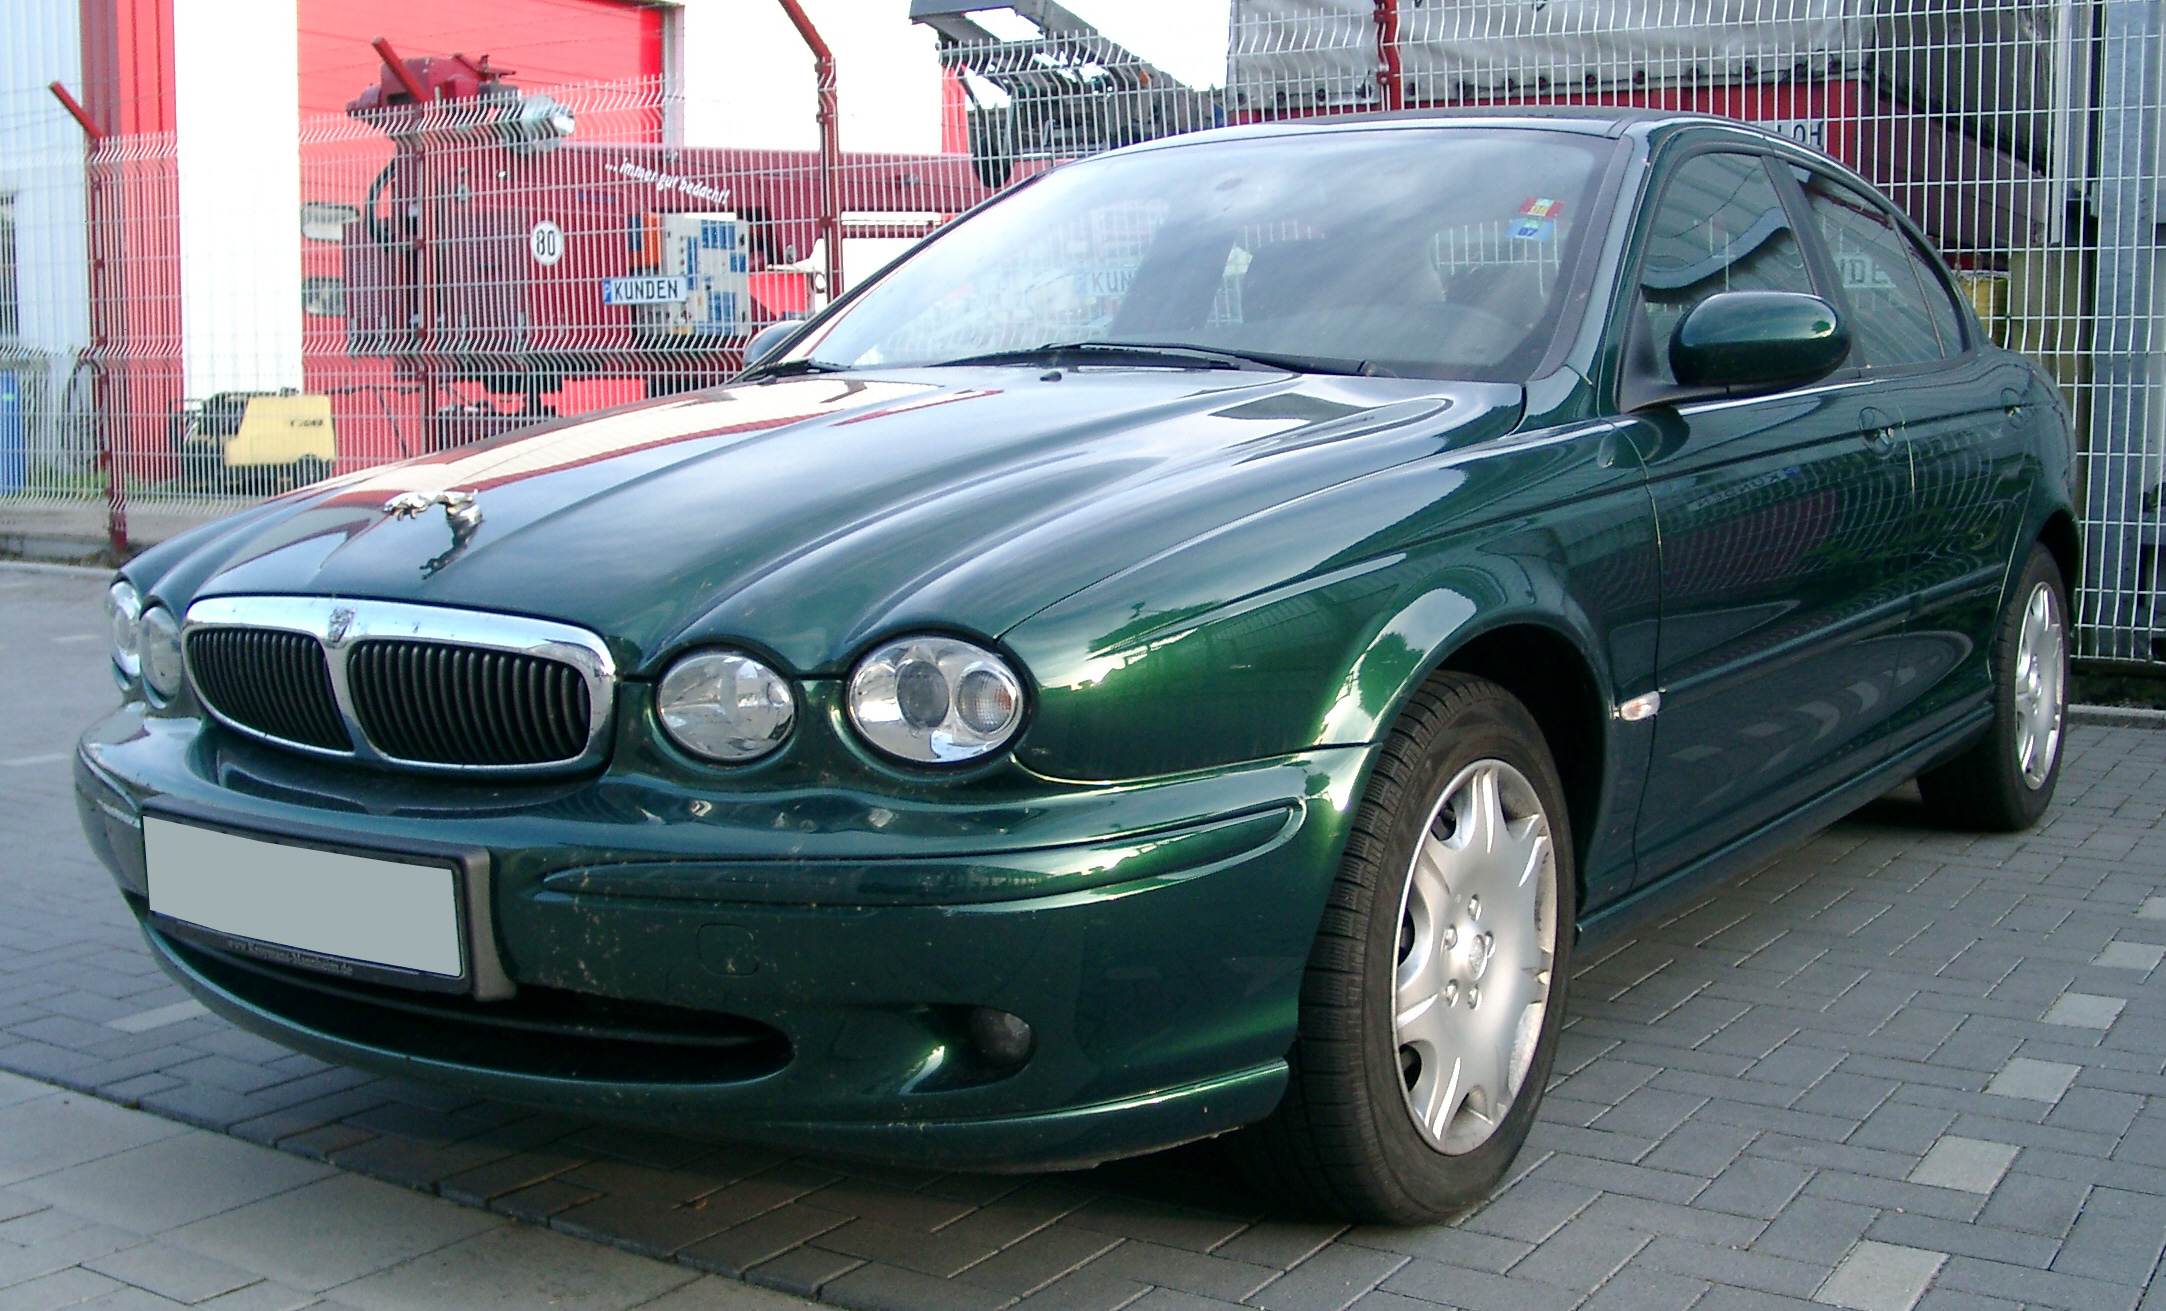 File:Jaguar X-type front 20070521.jpg - Wikimedia Commons